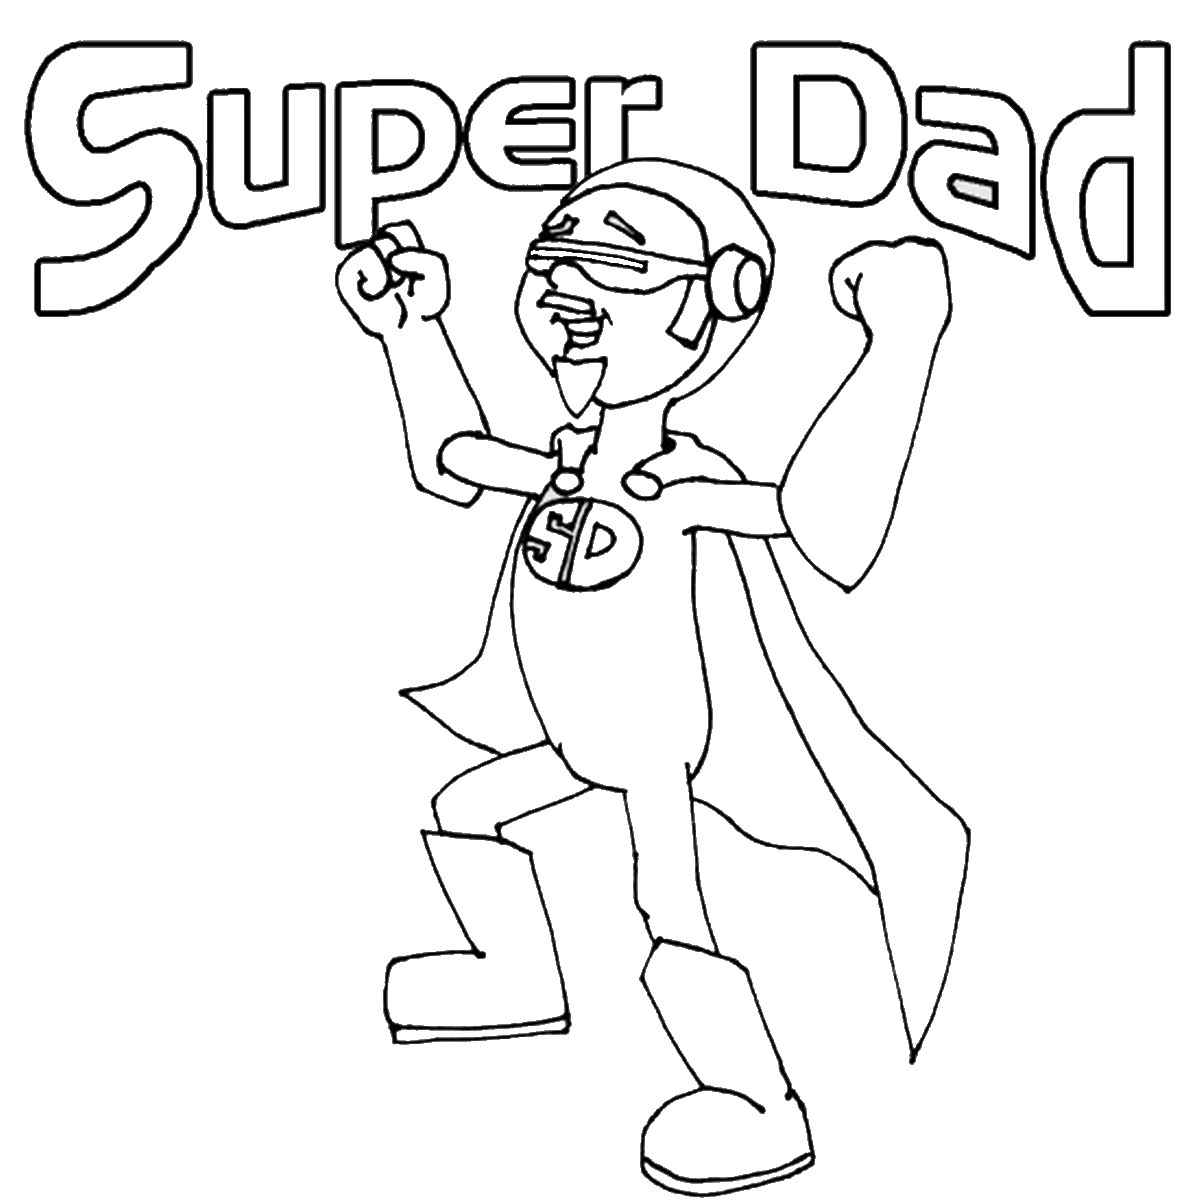 fathers day coloring sheets 30 free printable fathers day coloring pages scribblefun coloring sheets fathers day